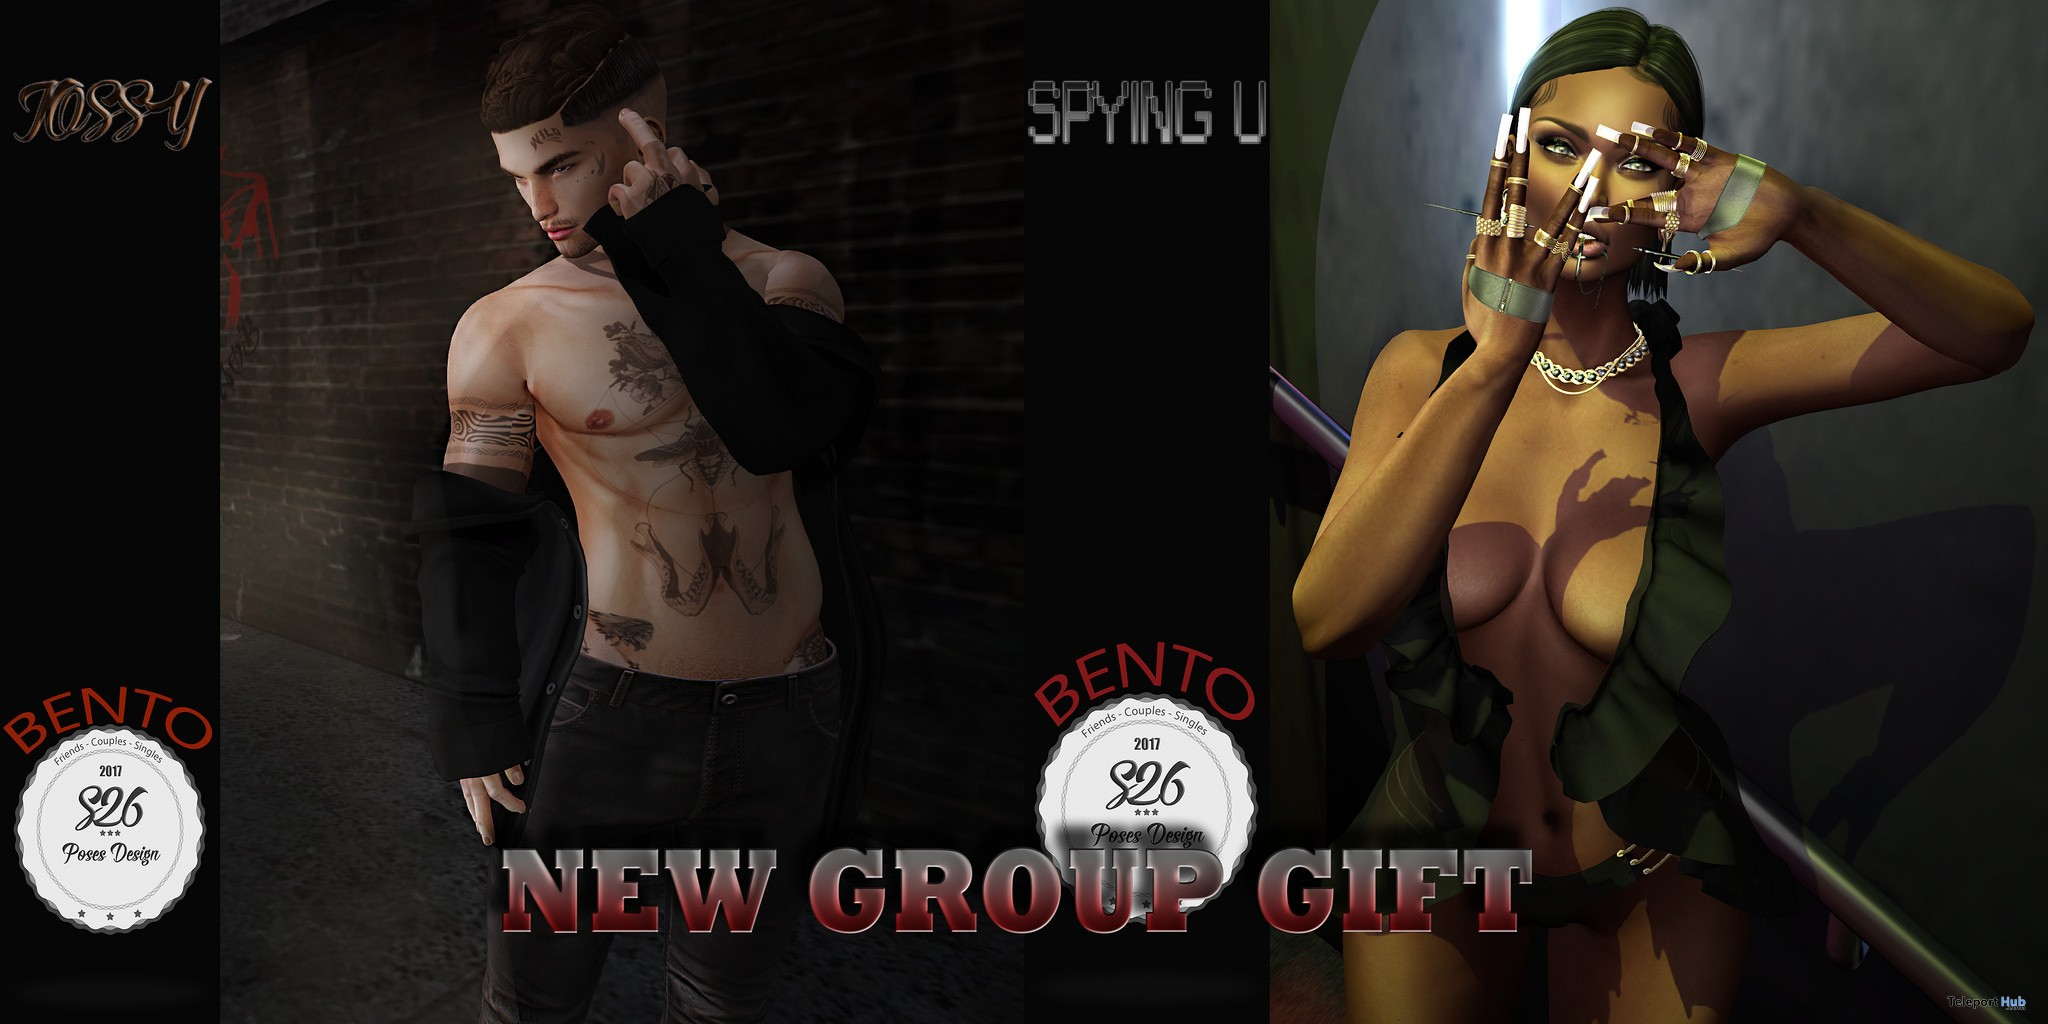 Jossy & Spying You Bento Poses September 2017 Group Gift by S26 Pose Store - Teleport Hub - teleporthub.com